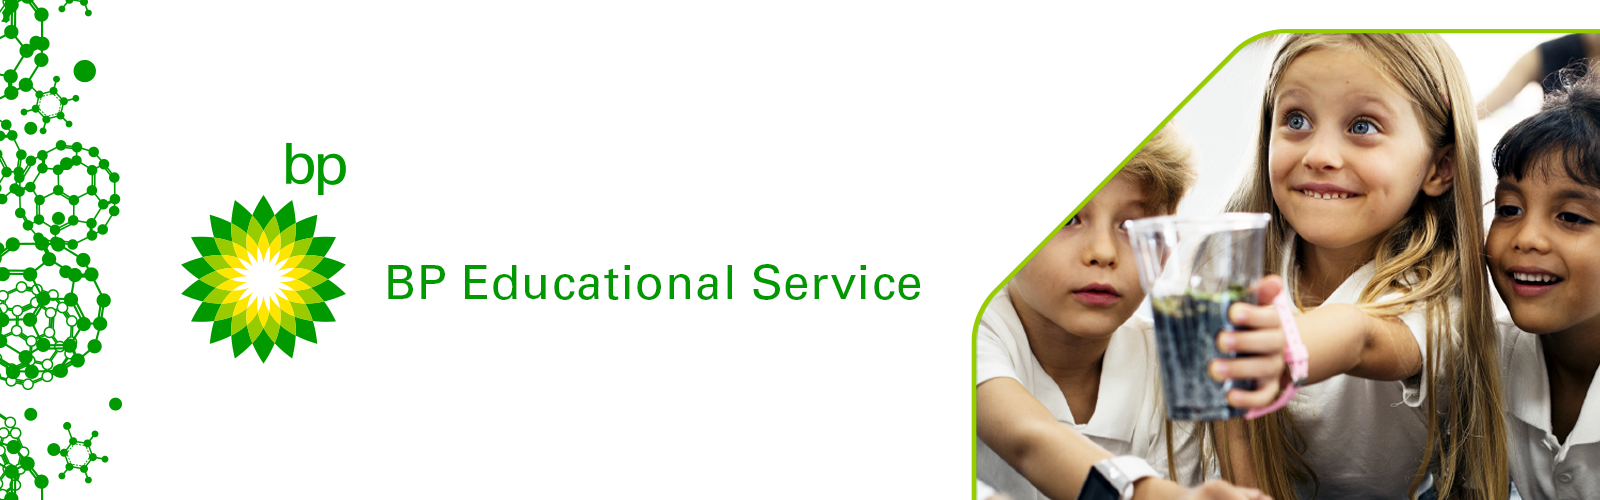 BP educational service initiative banner